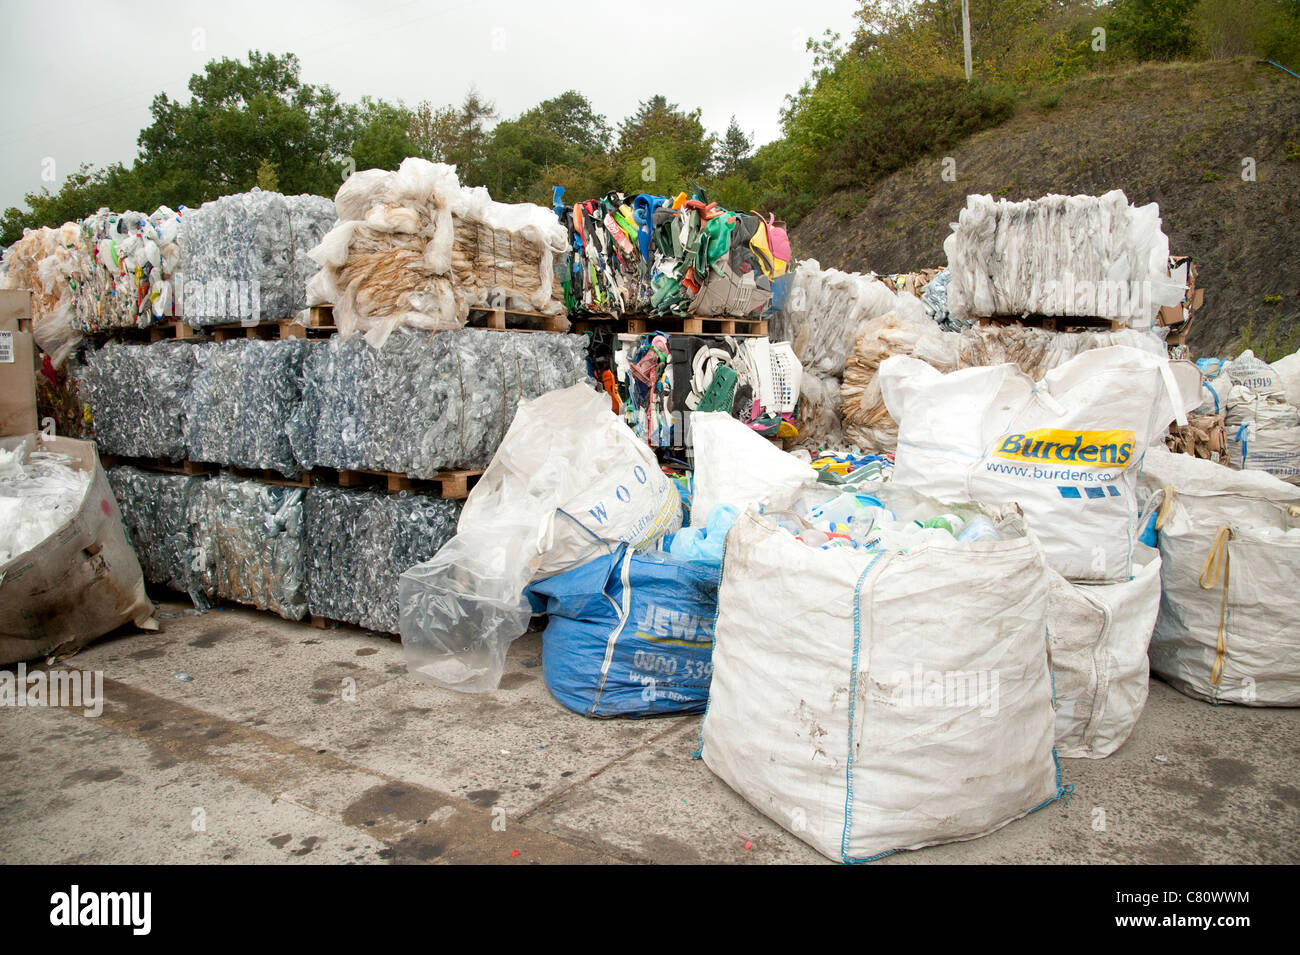 Bales of compacted waste awaiting collection at a  recycling centre UK - Stock Image